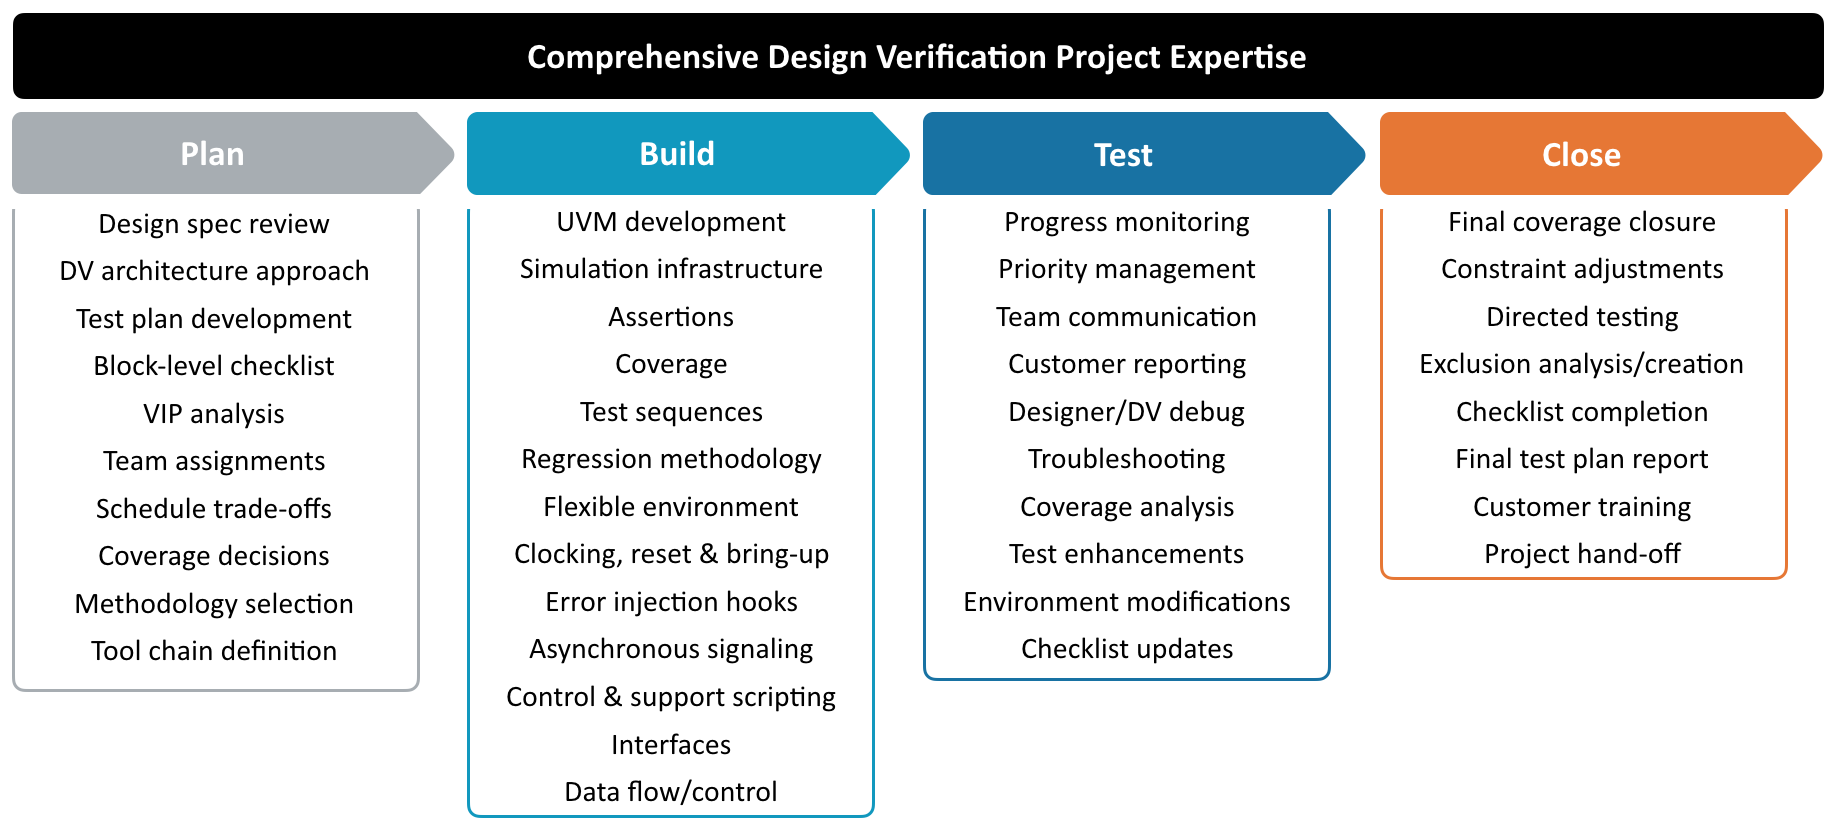 Verification Project Experience